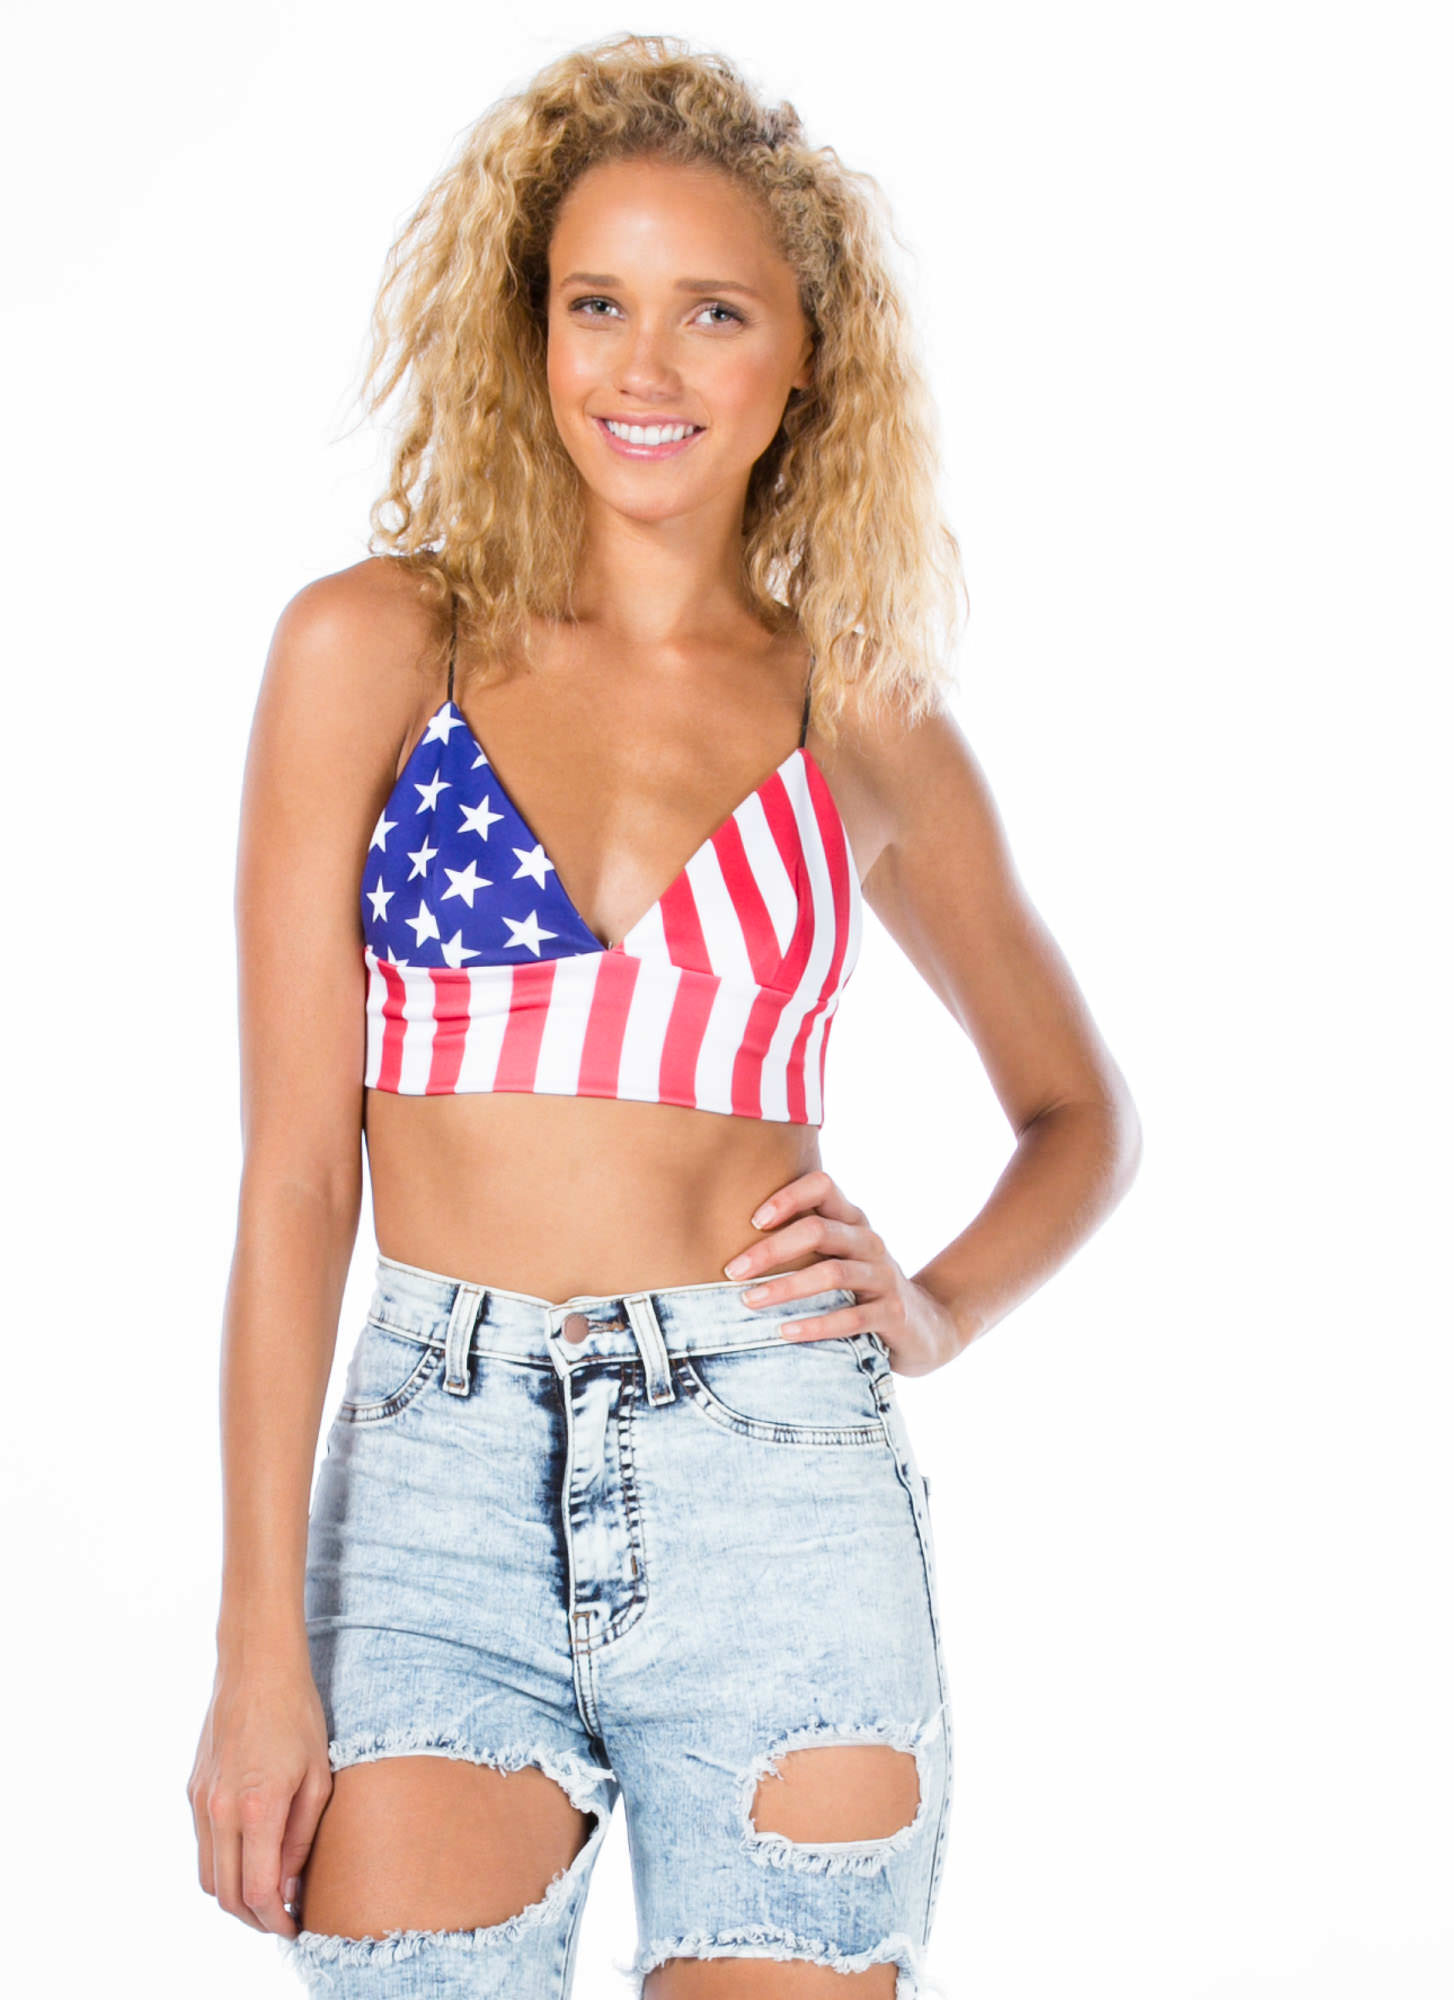 Flagged Down Stars And Stripes Bra Top RED